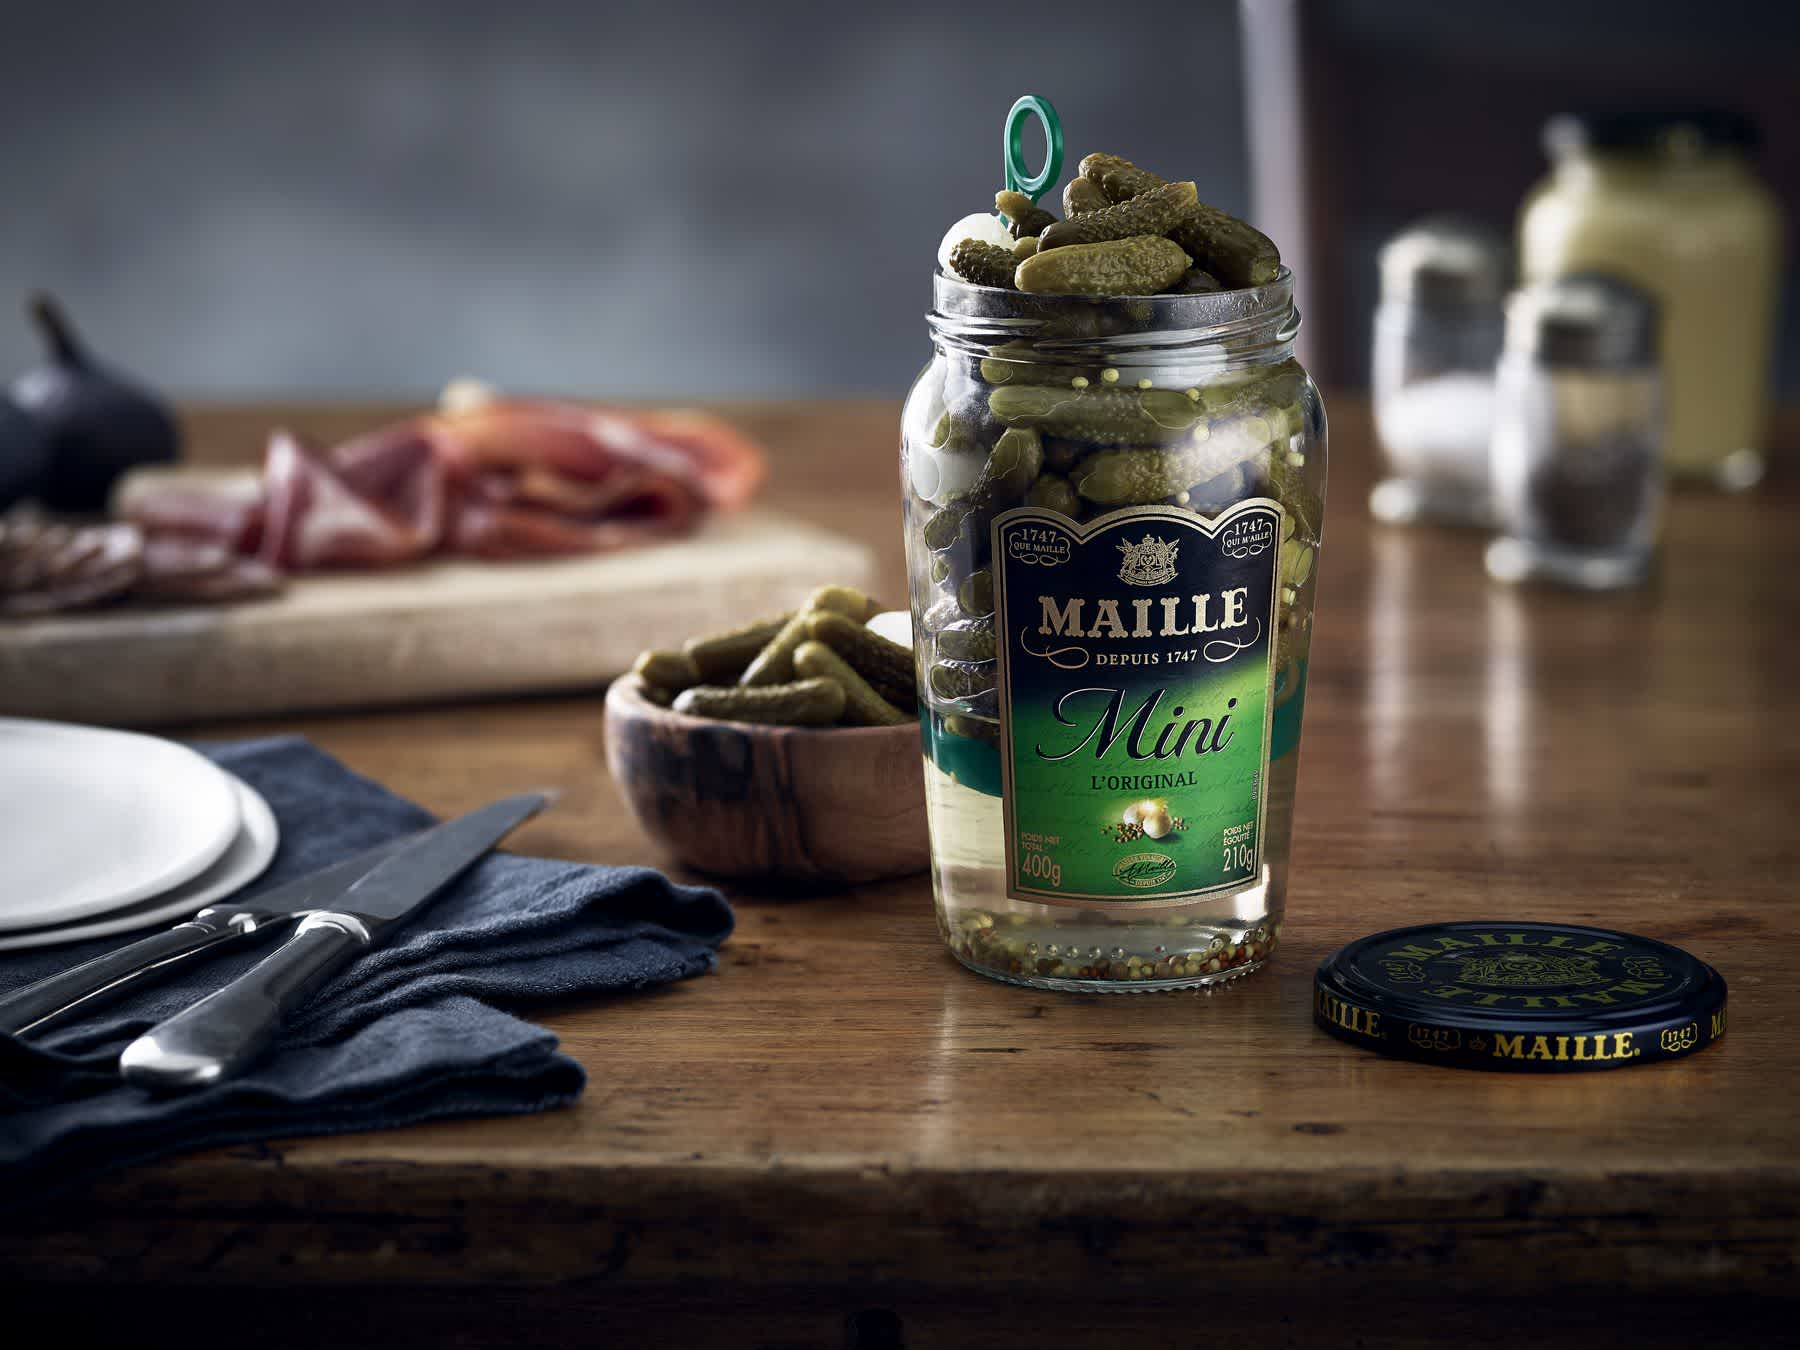 Maille - Cornichon mini l'original, 210 g, recipe